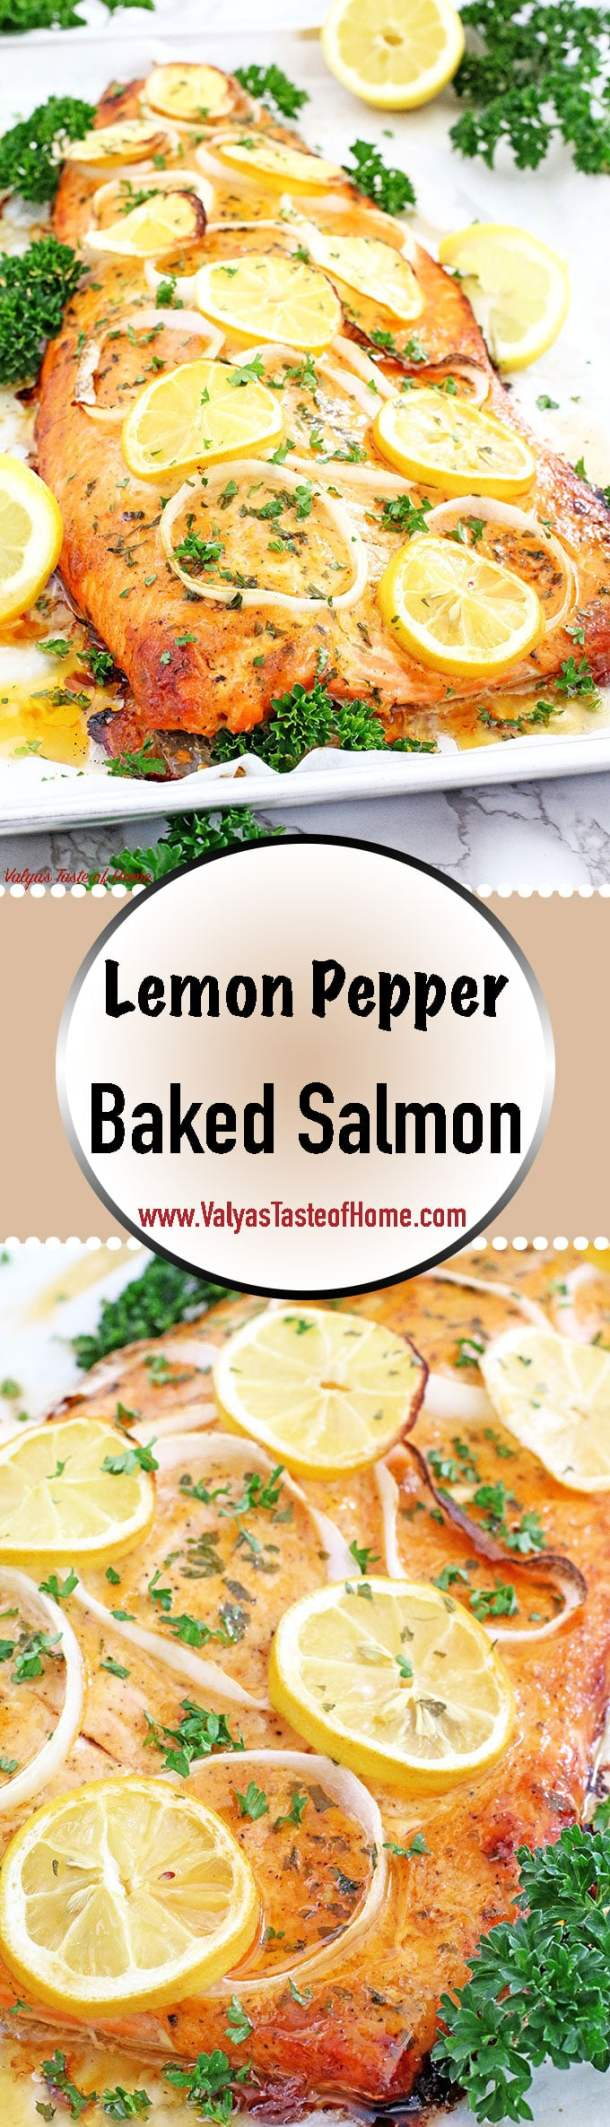 This Lemon Pepper Baked Salmon delicacy is the softest and juiciest baked salmon I've ever had. It bursts with flavor and is absolutely scrumptious. You will have seconds for sure! We usually serve this salmon with mashed potatoes and gravy, as kids like it. | www.valyastasteofhome.com